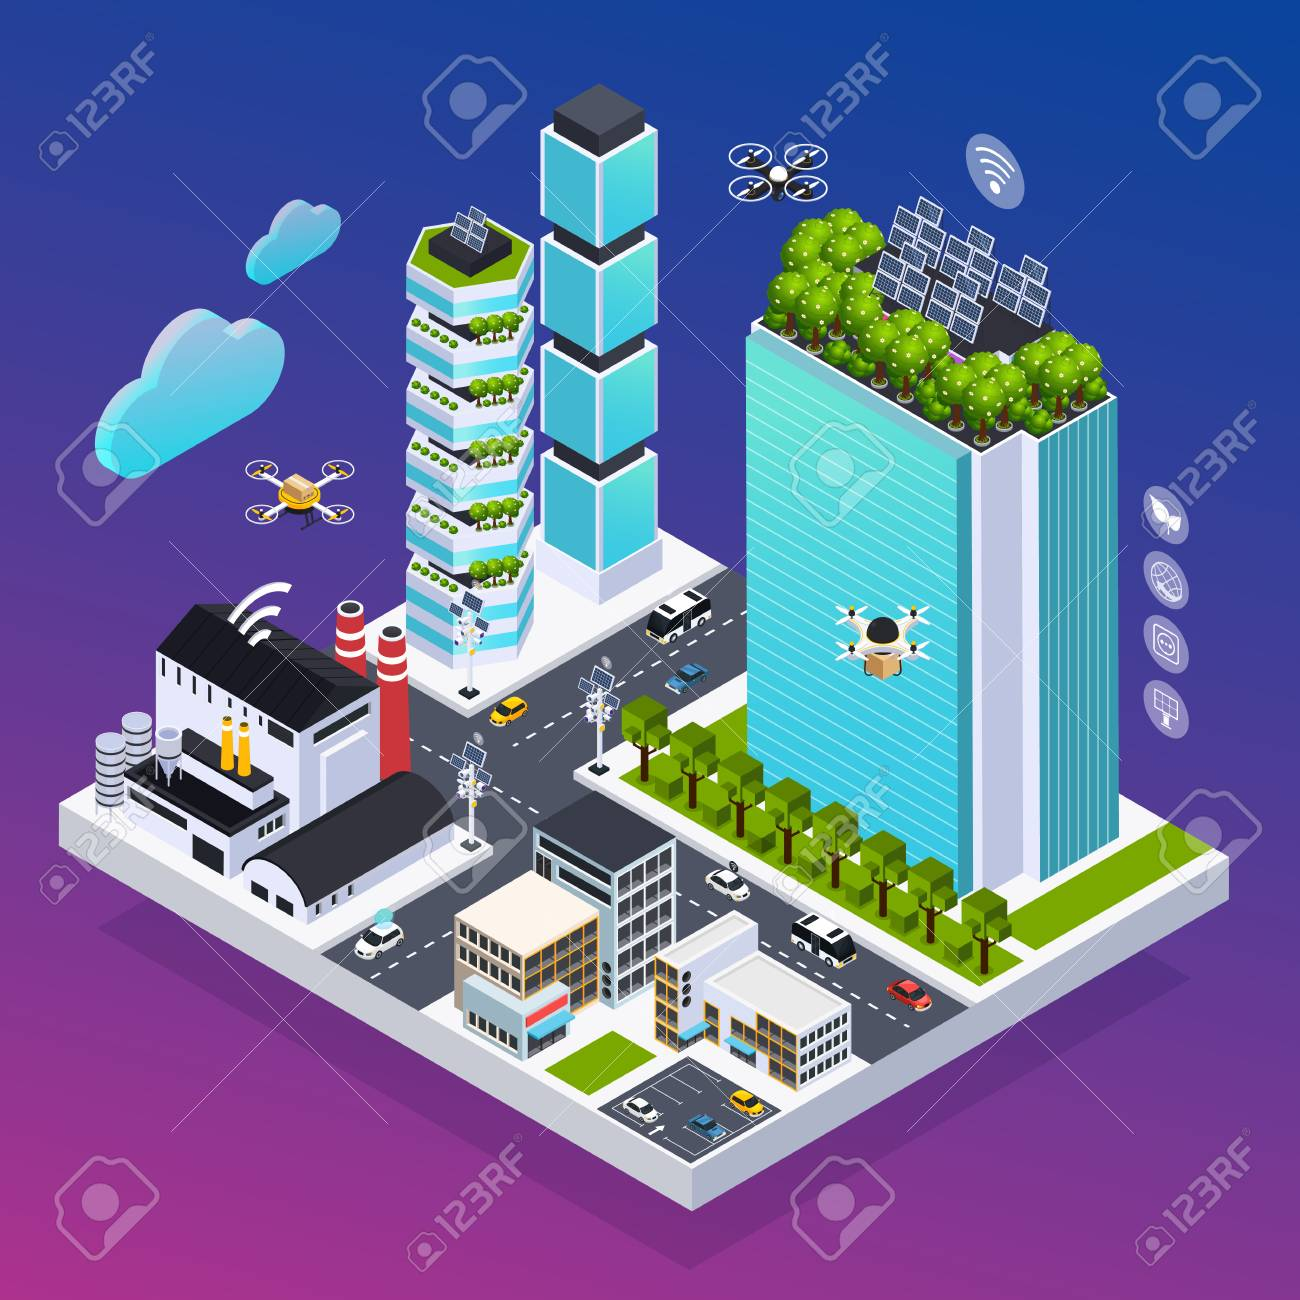 Smart city composition with eco technology symbols isometric vector illustration - 110647085